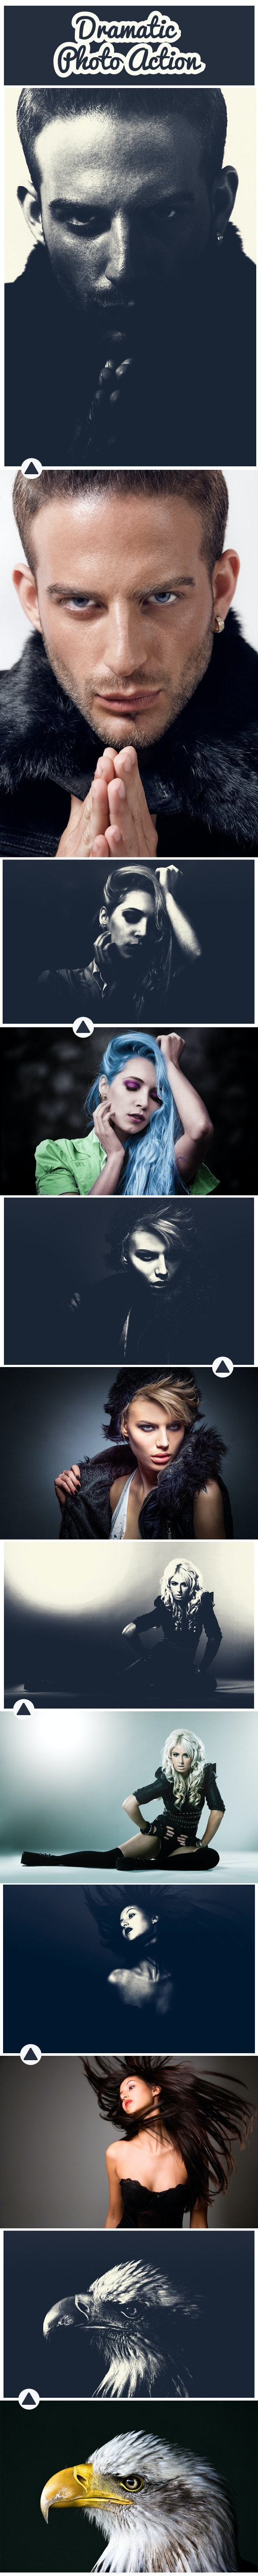 Dramatic Photo Action - Photo Effects Actions